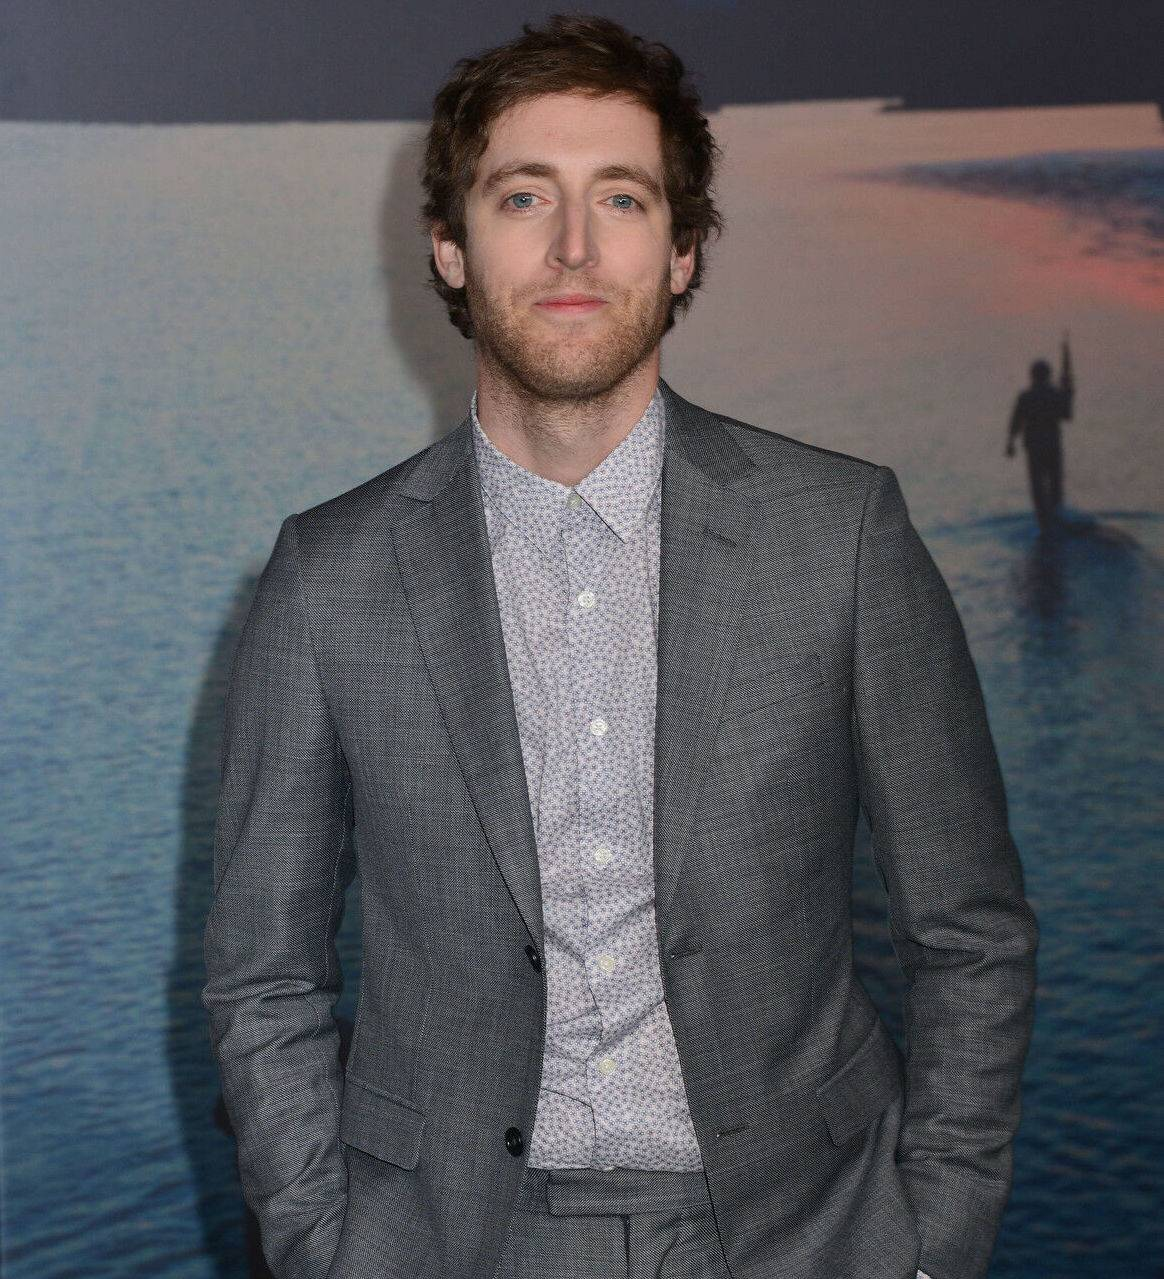 Thomas Middleditch, famous for